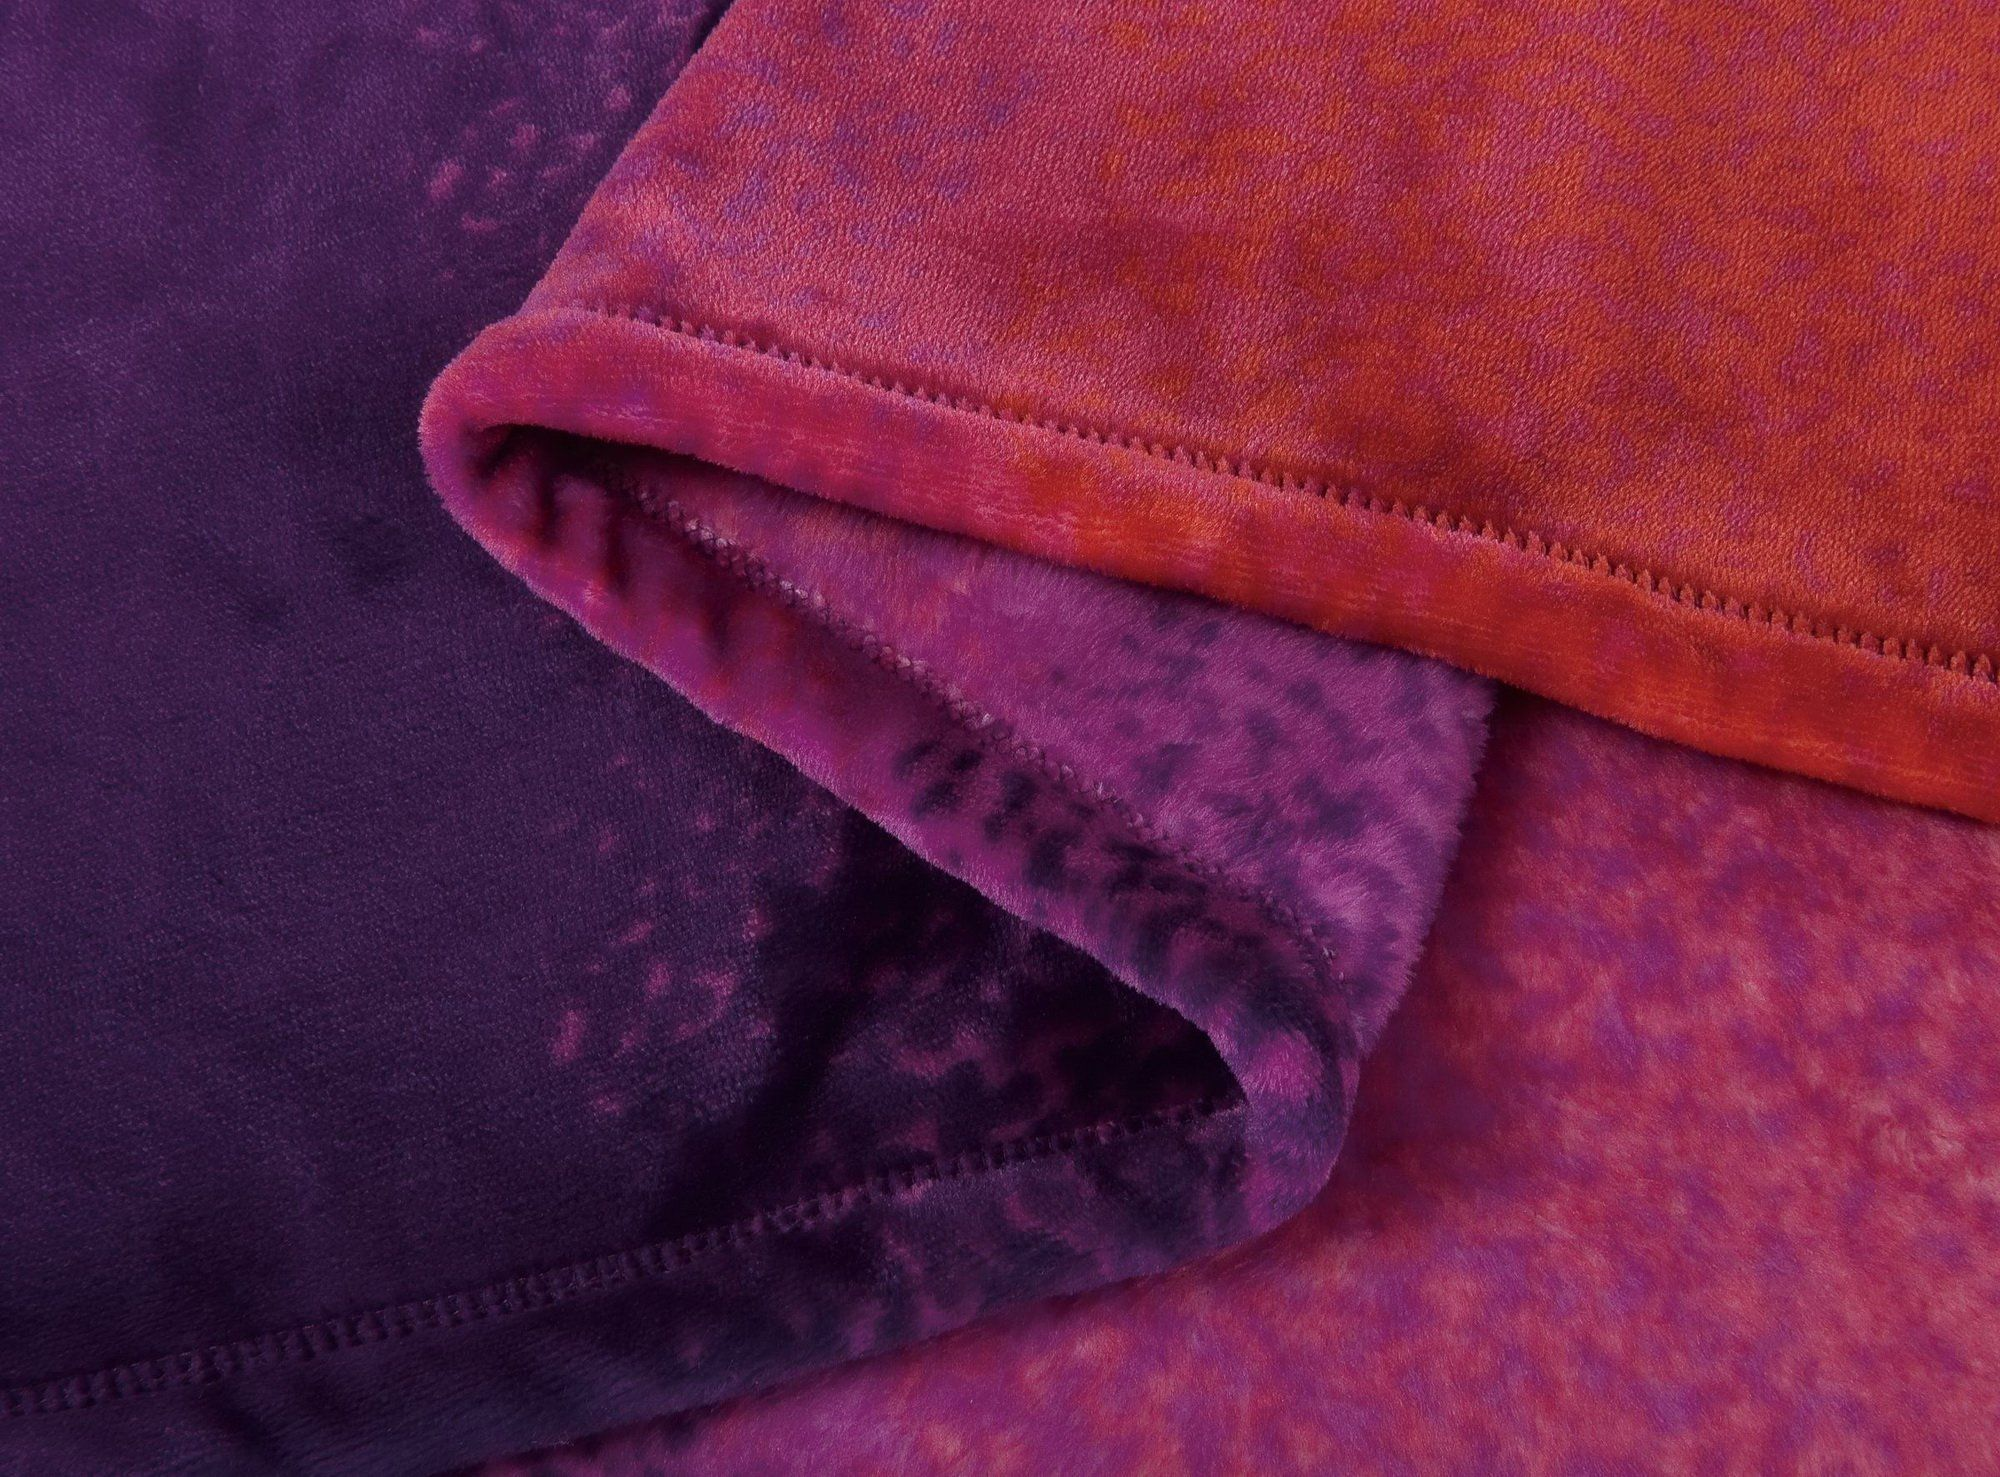 Calitime super soft throw blanket for bed sofa couch cozy warm